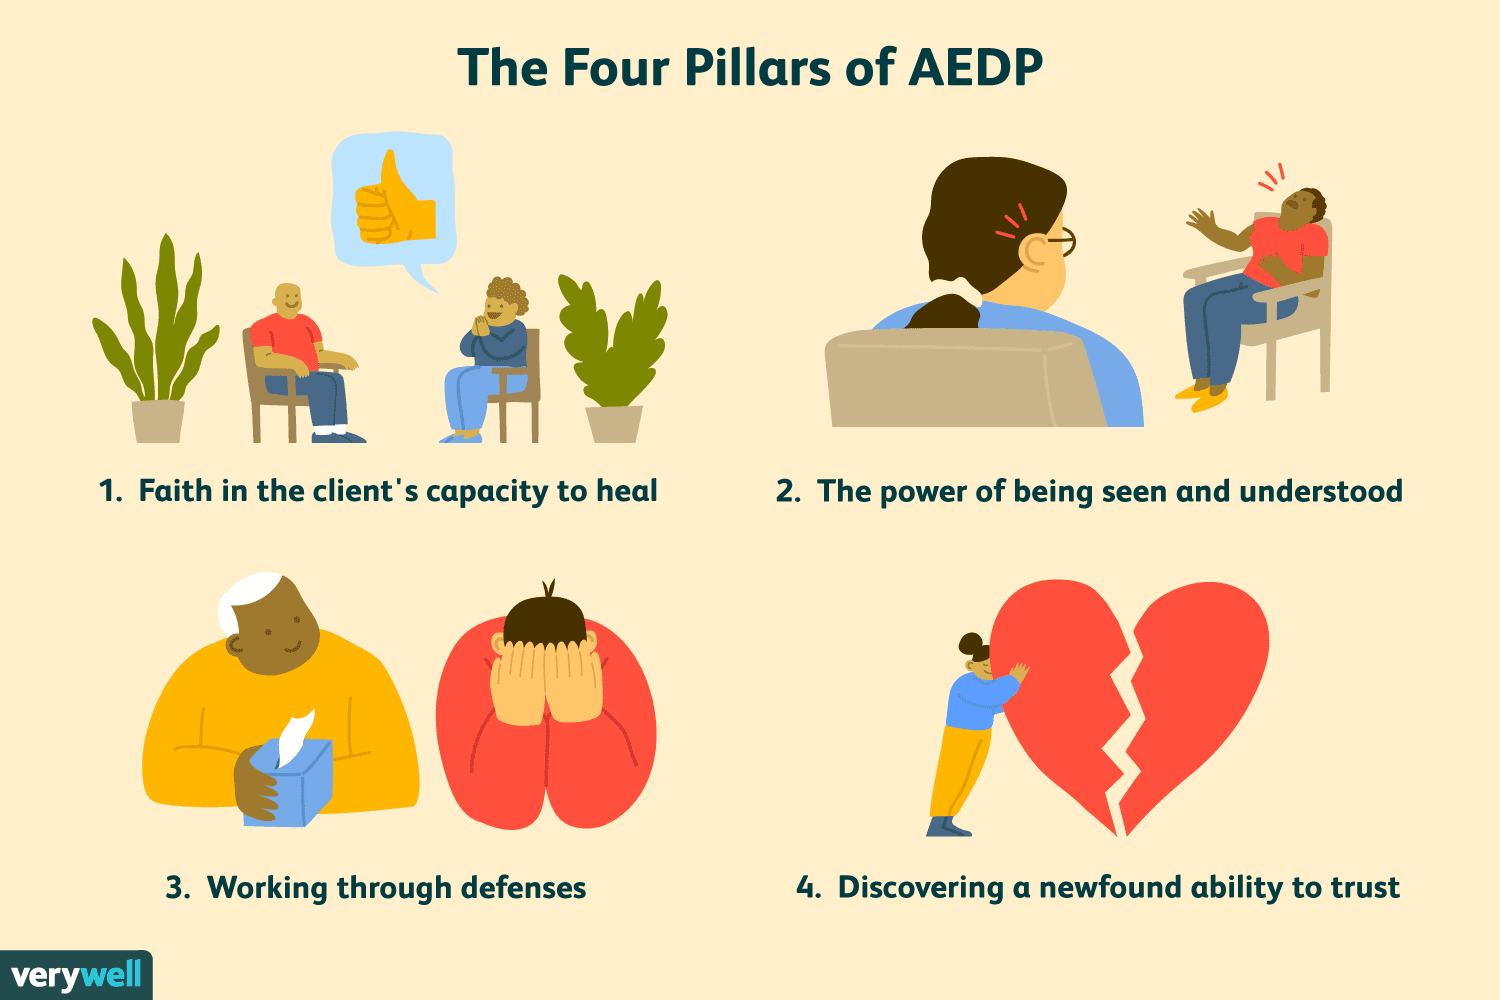 AEDP therapy